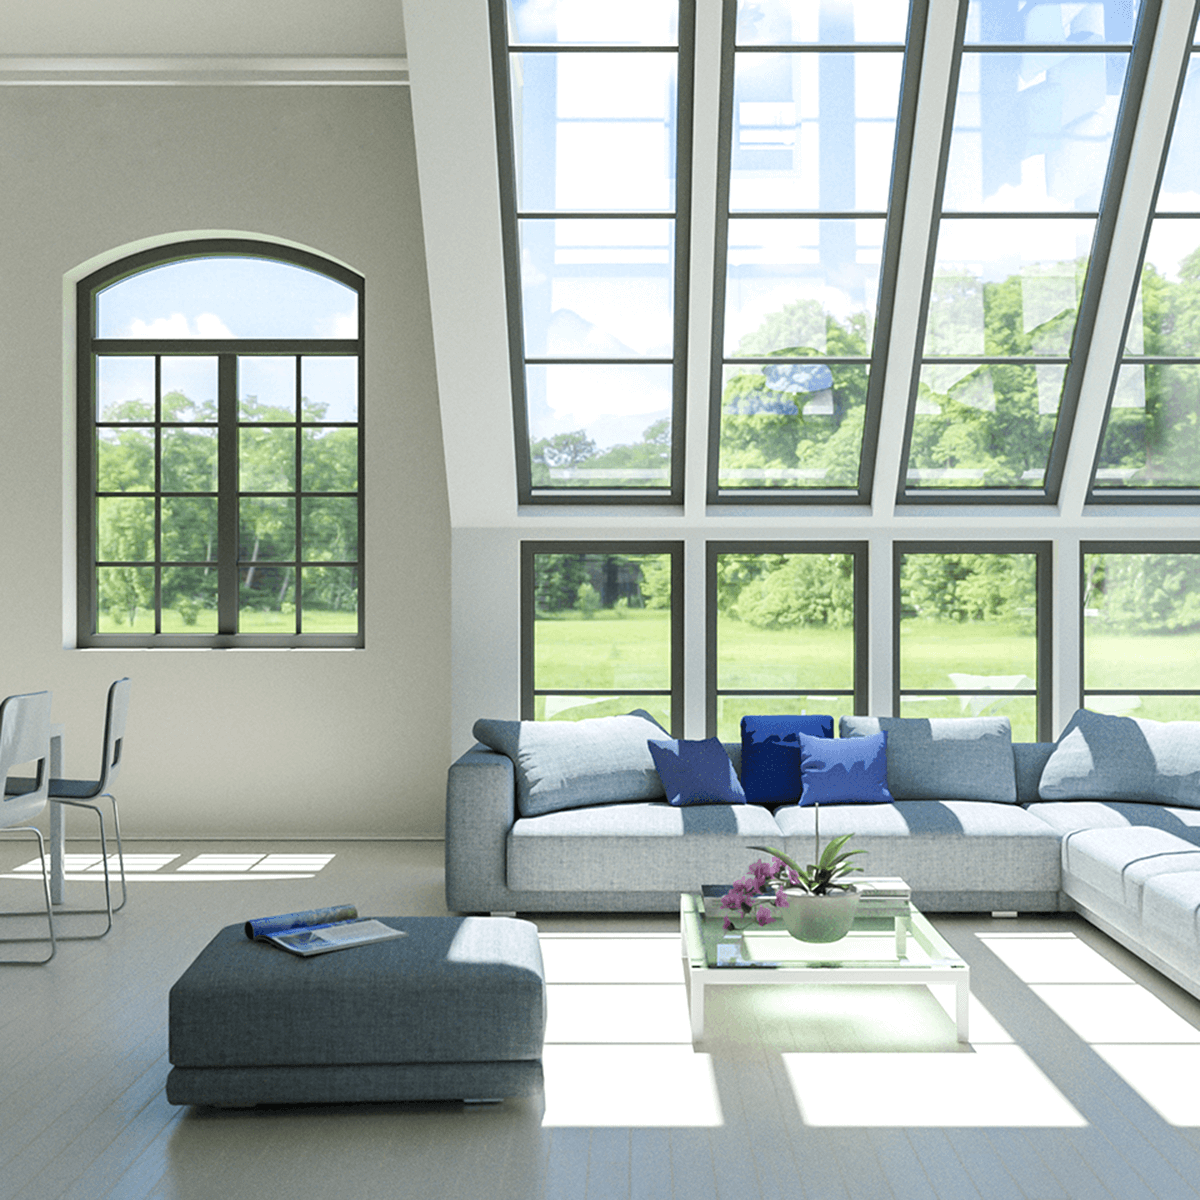 15 Ways To Incorporate Natural Lighting Into Your Home